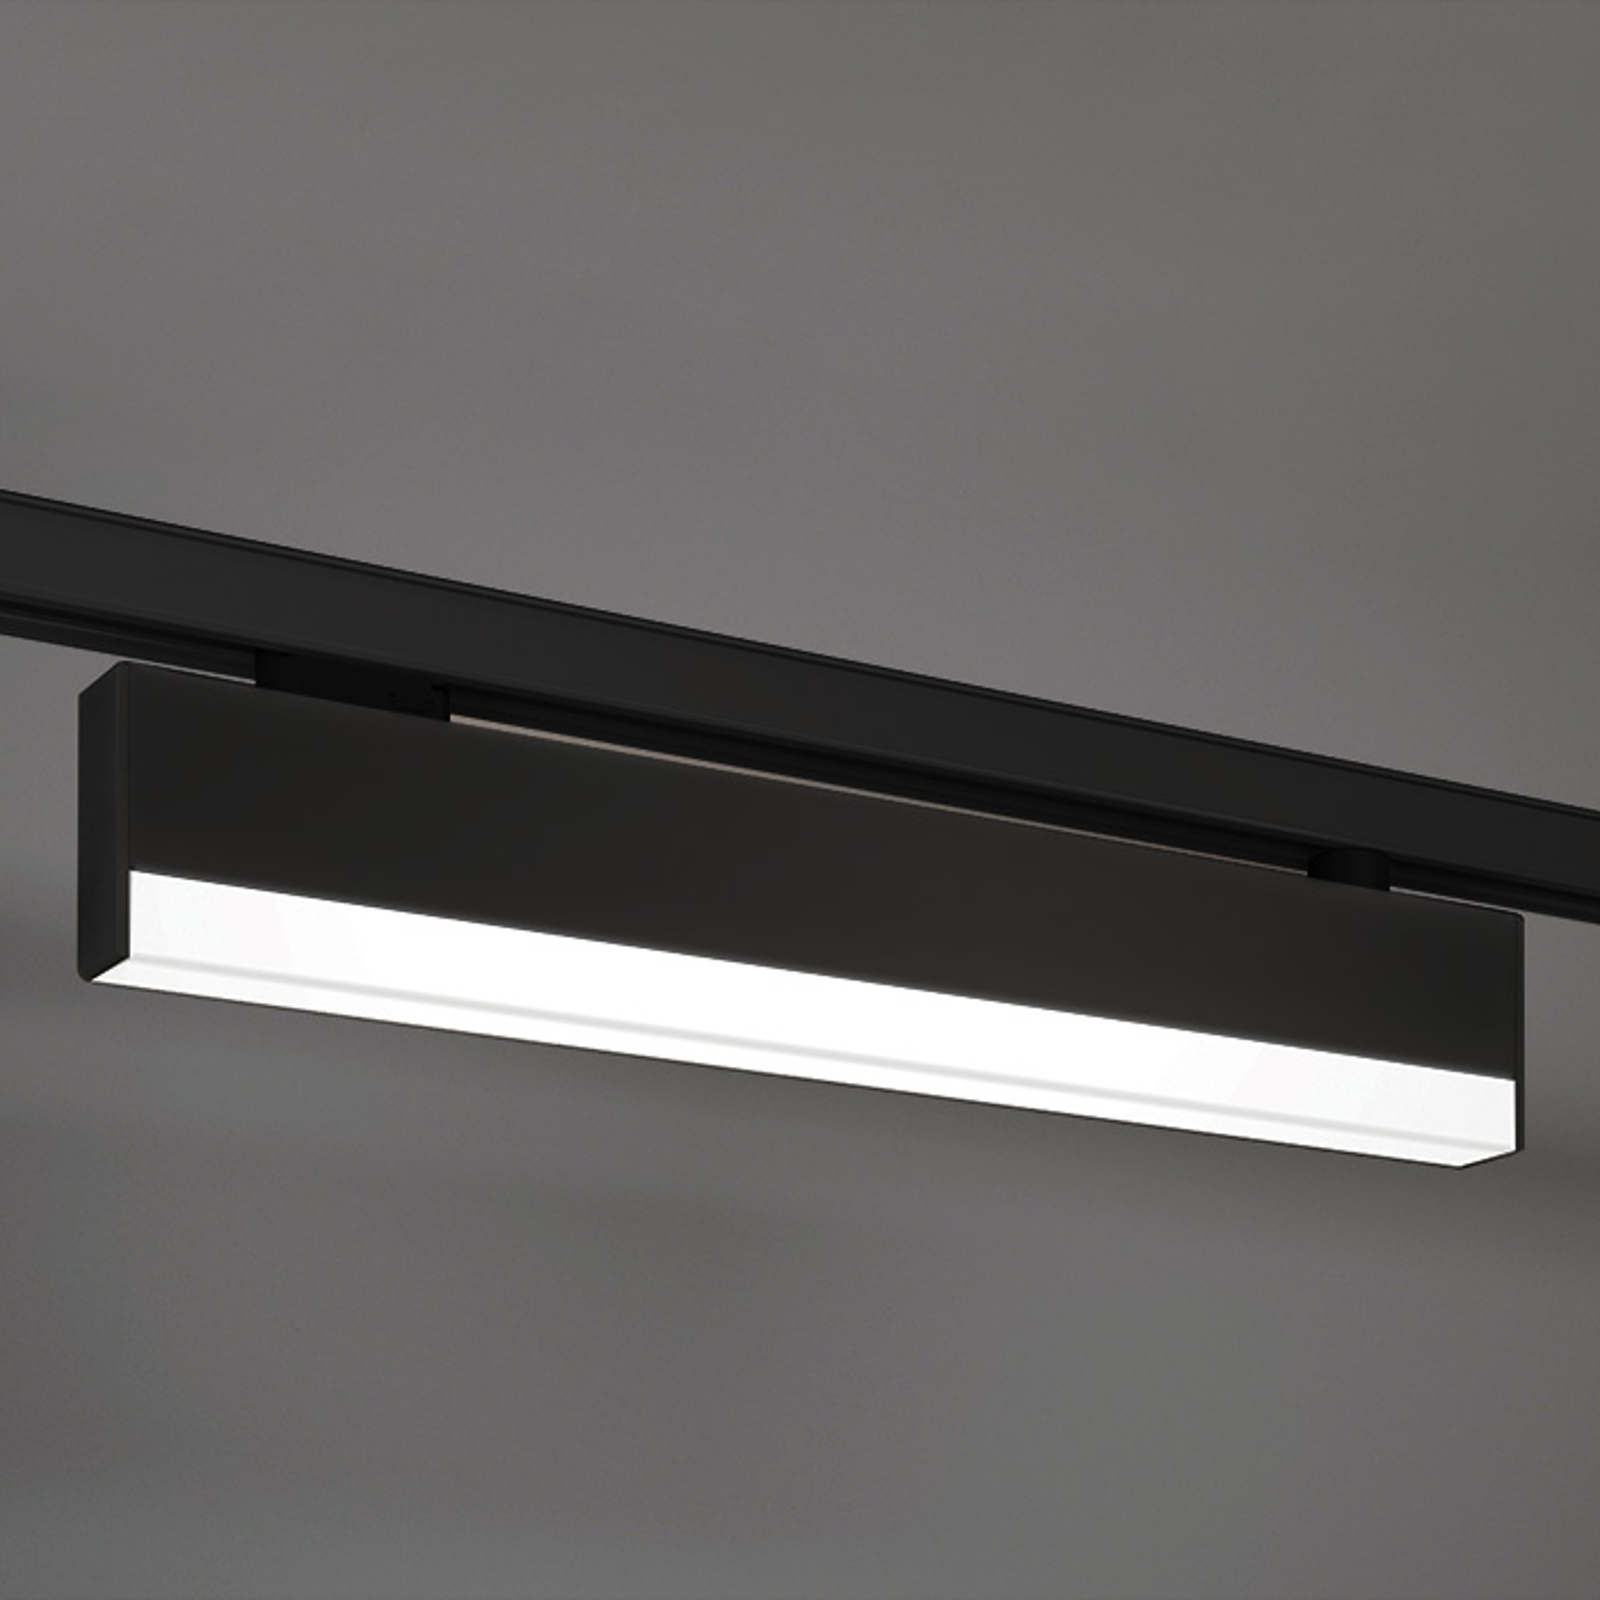 Attractive LED light for three-circuit track black_3039214_1